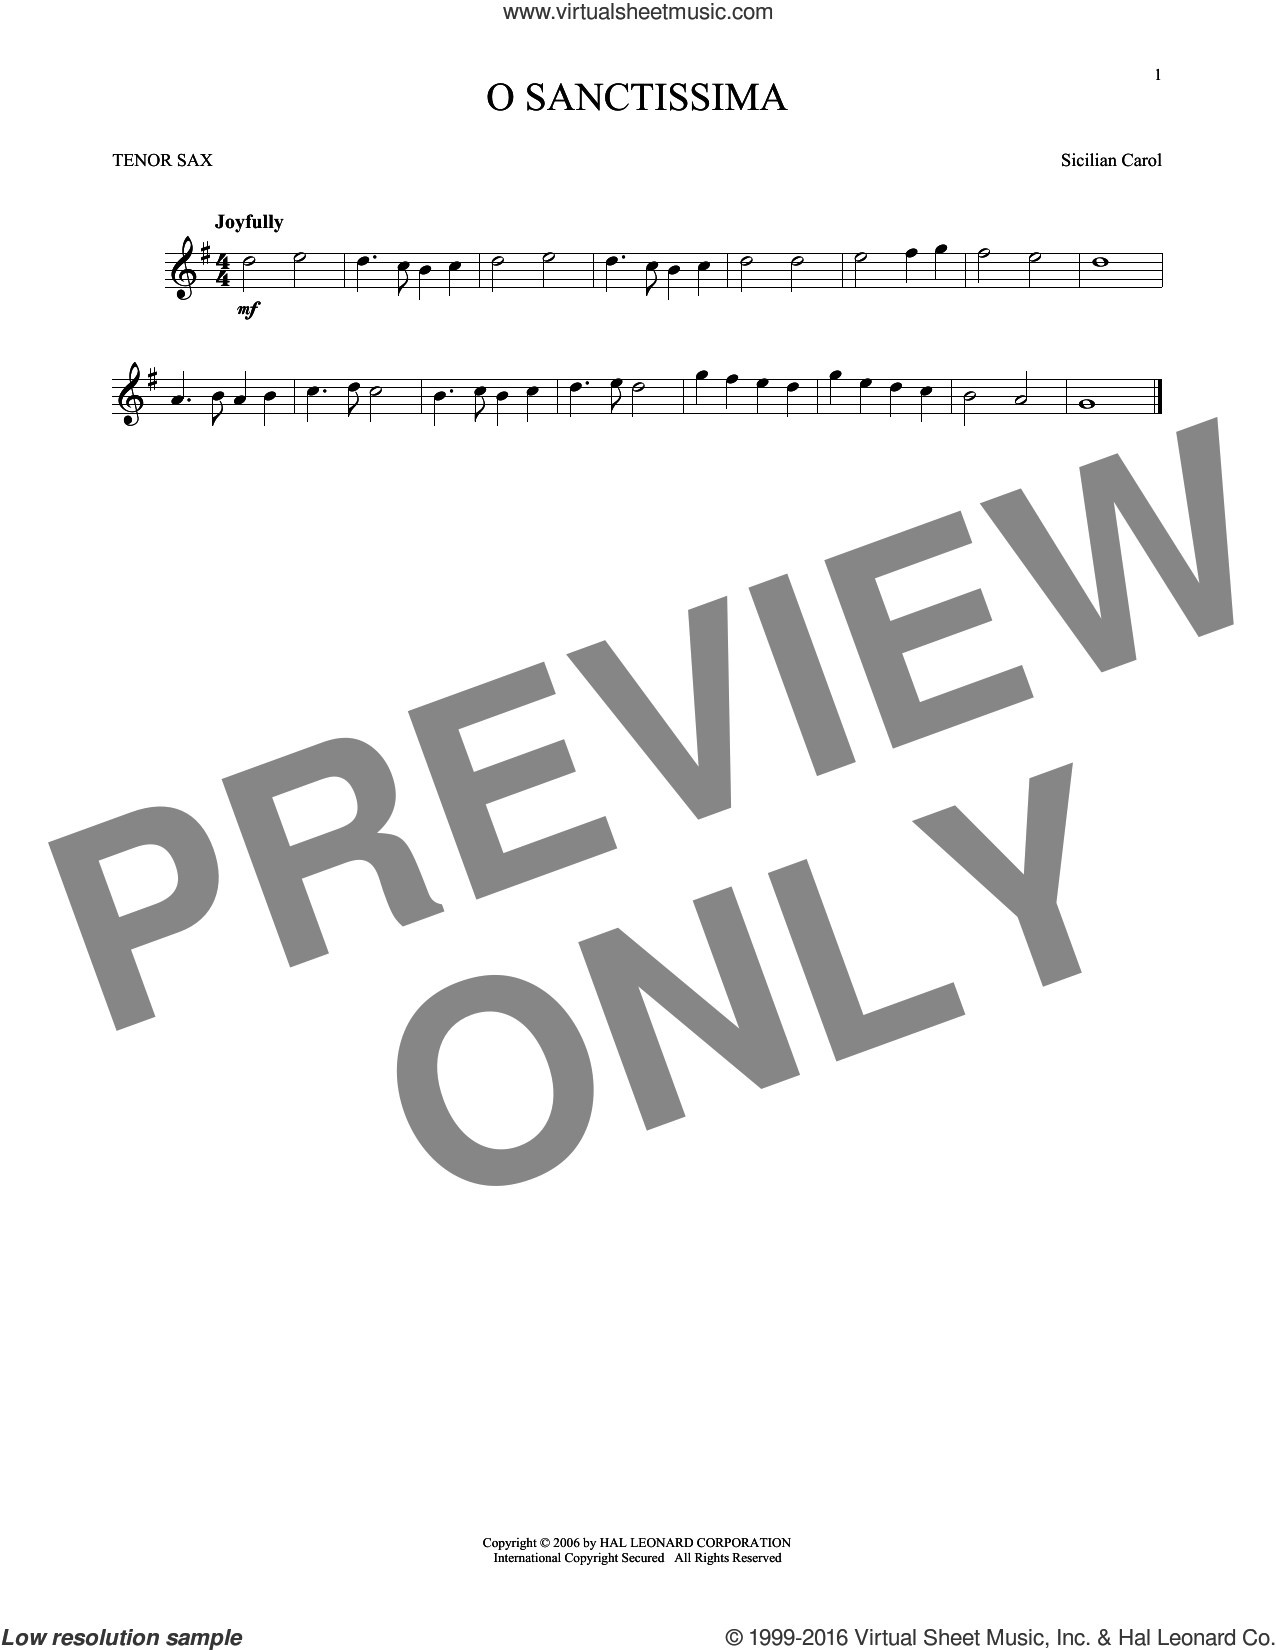 O Sanctissima sheet music for tenor saxophone solo. Score Image Preview.